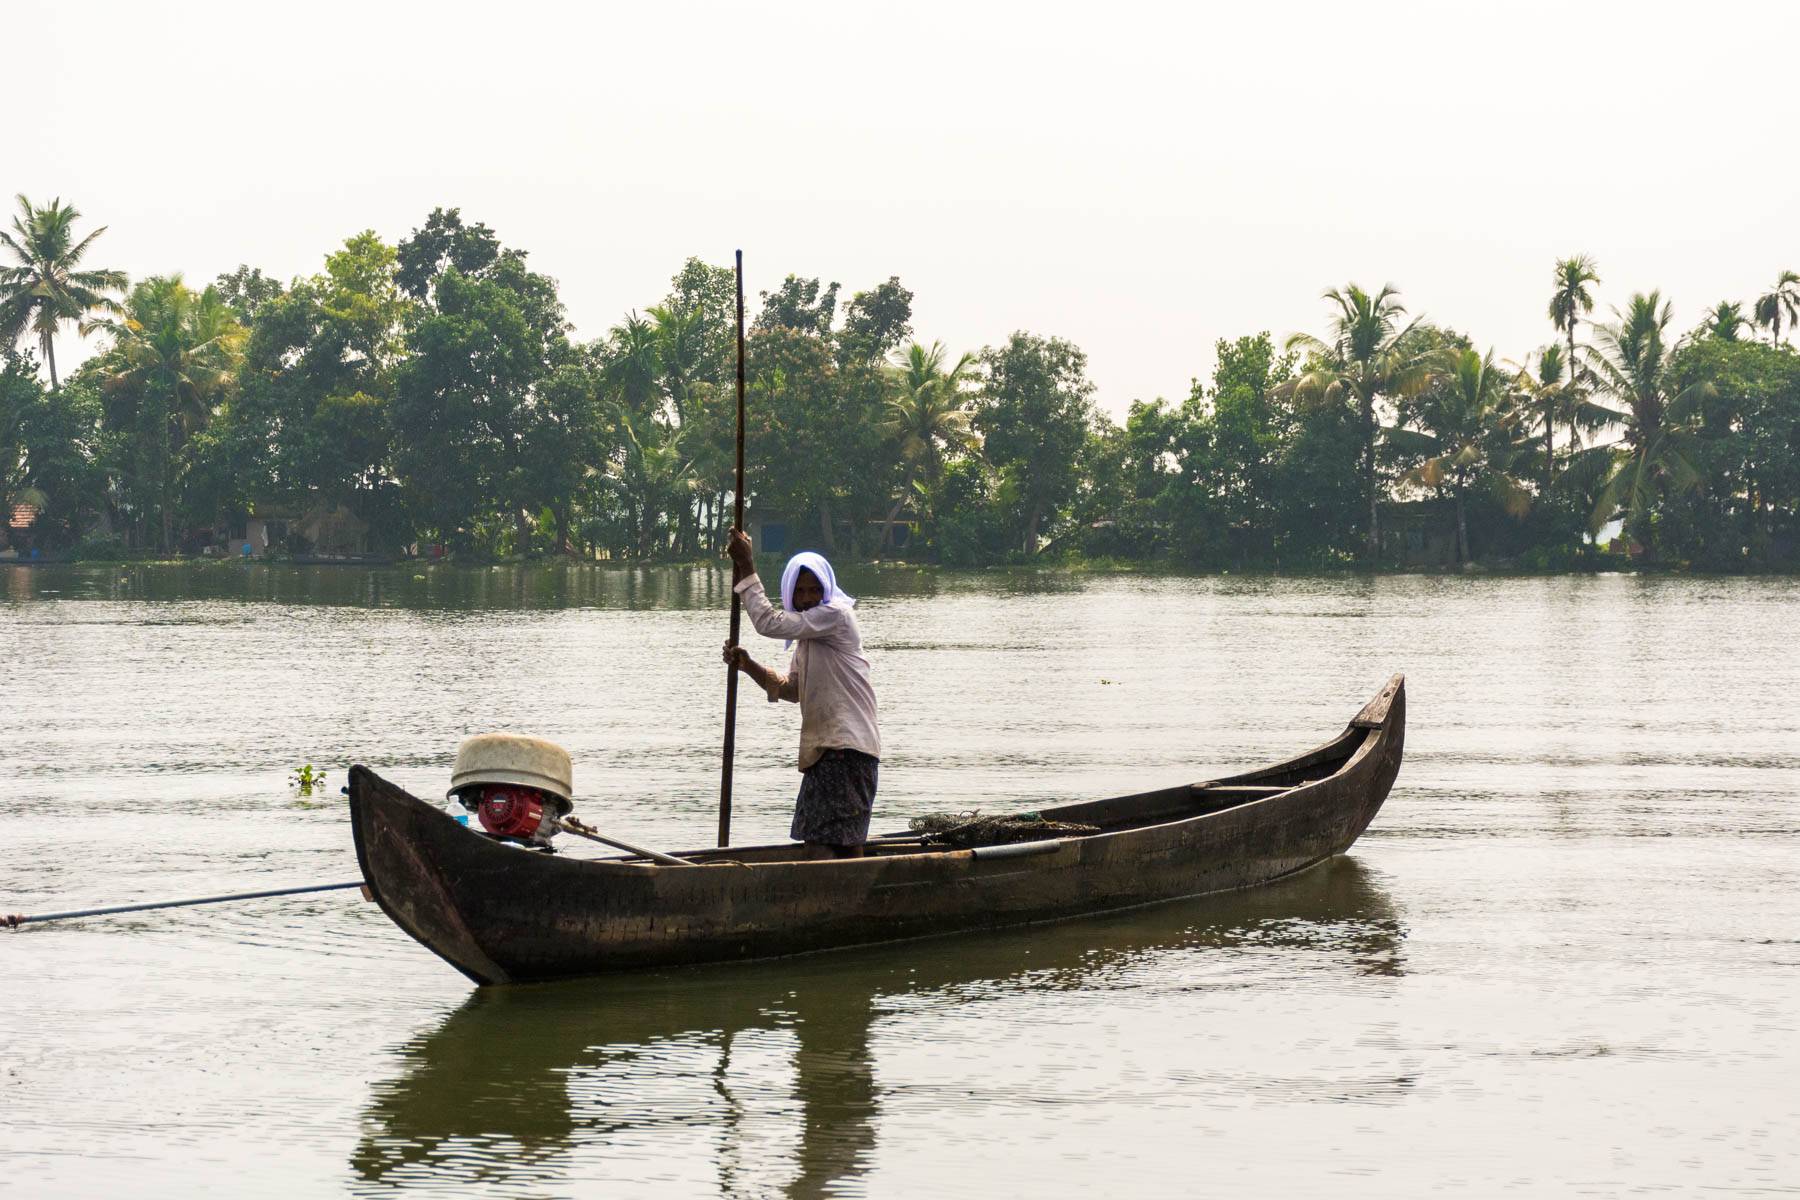 A fisherman in Alleppey (Alappuzha), Kerala, India - Lost With Purpose